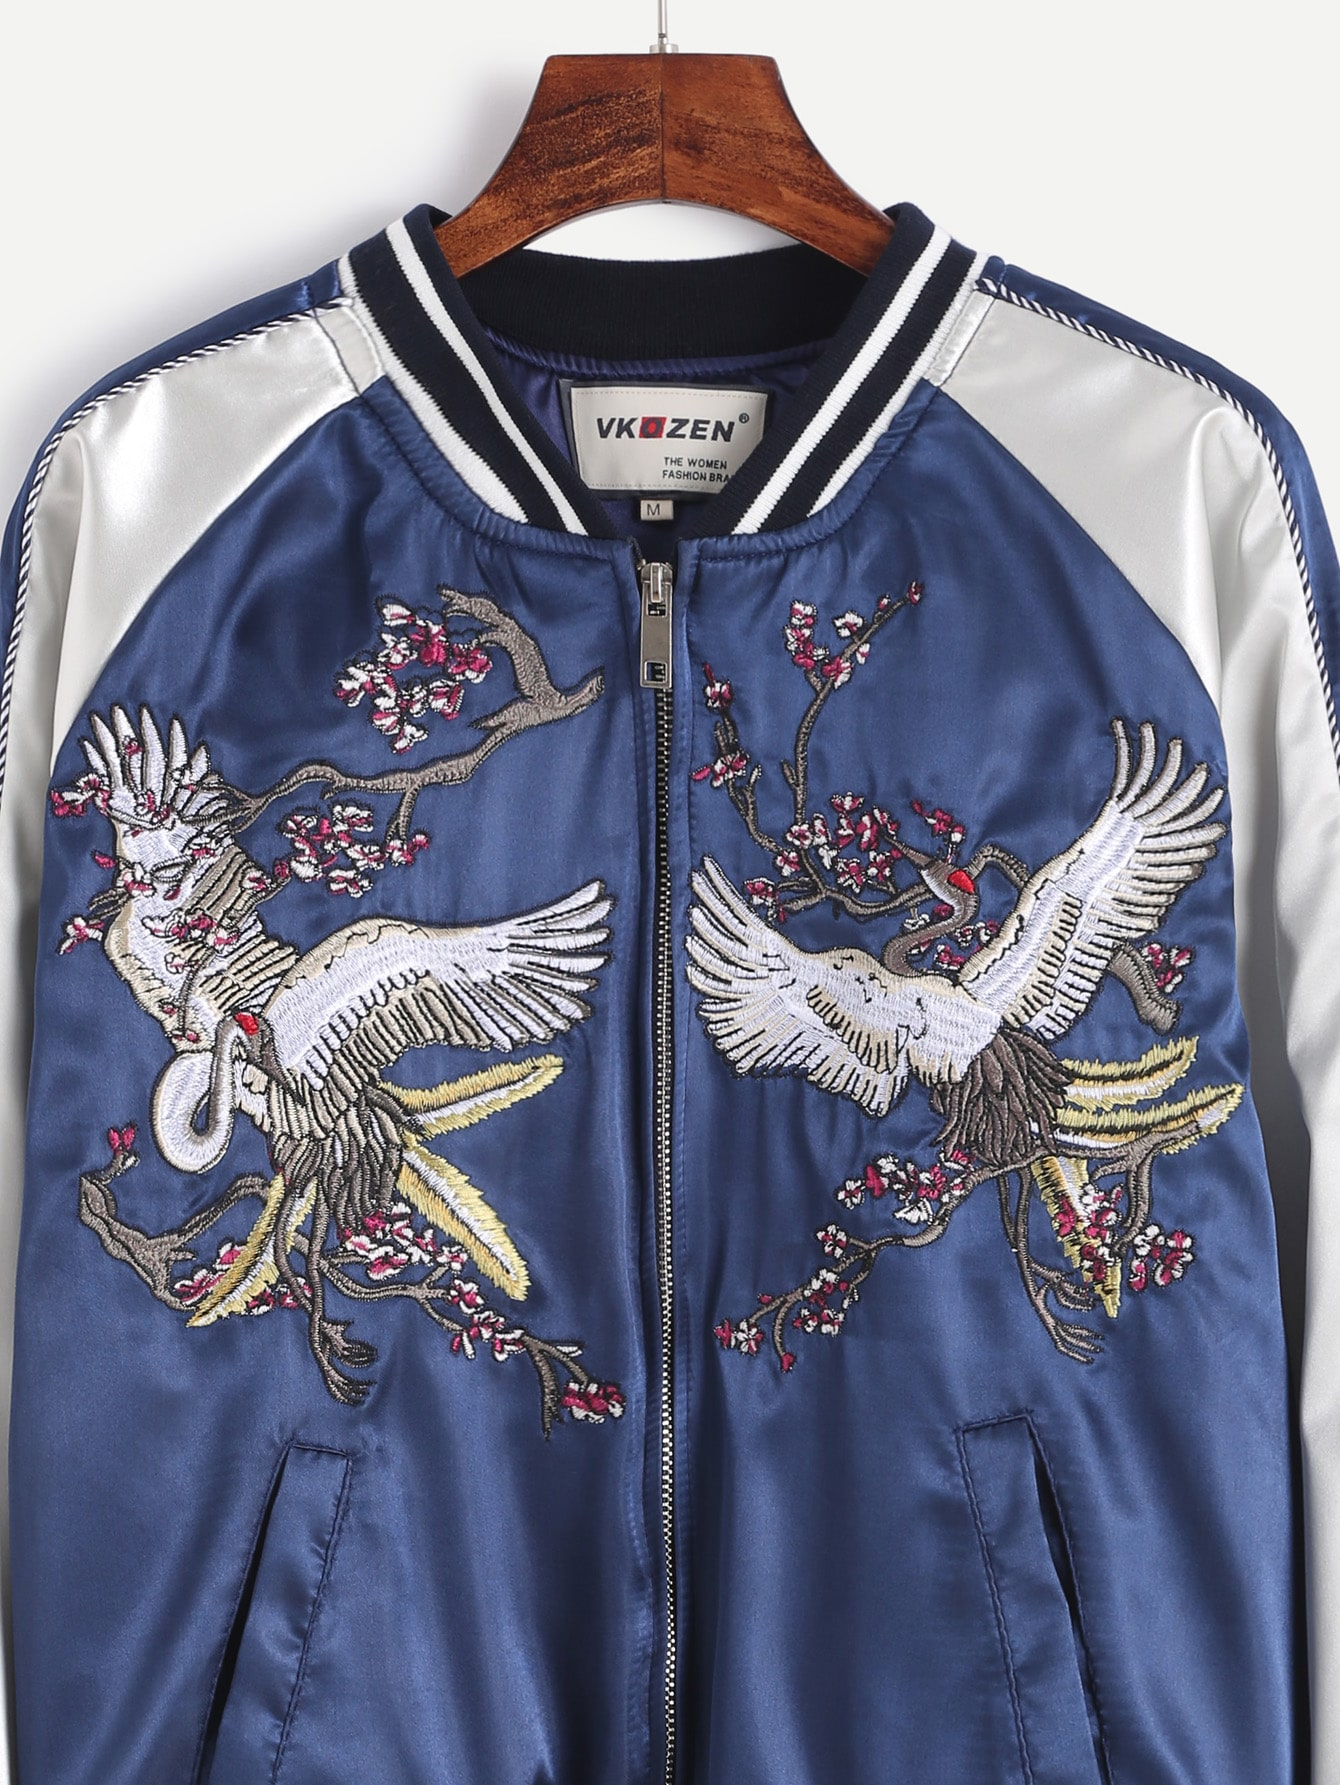 Contrast Striped Trim Embroidered Baseball Jacket SheIn